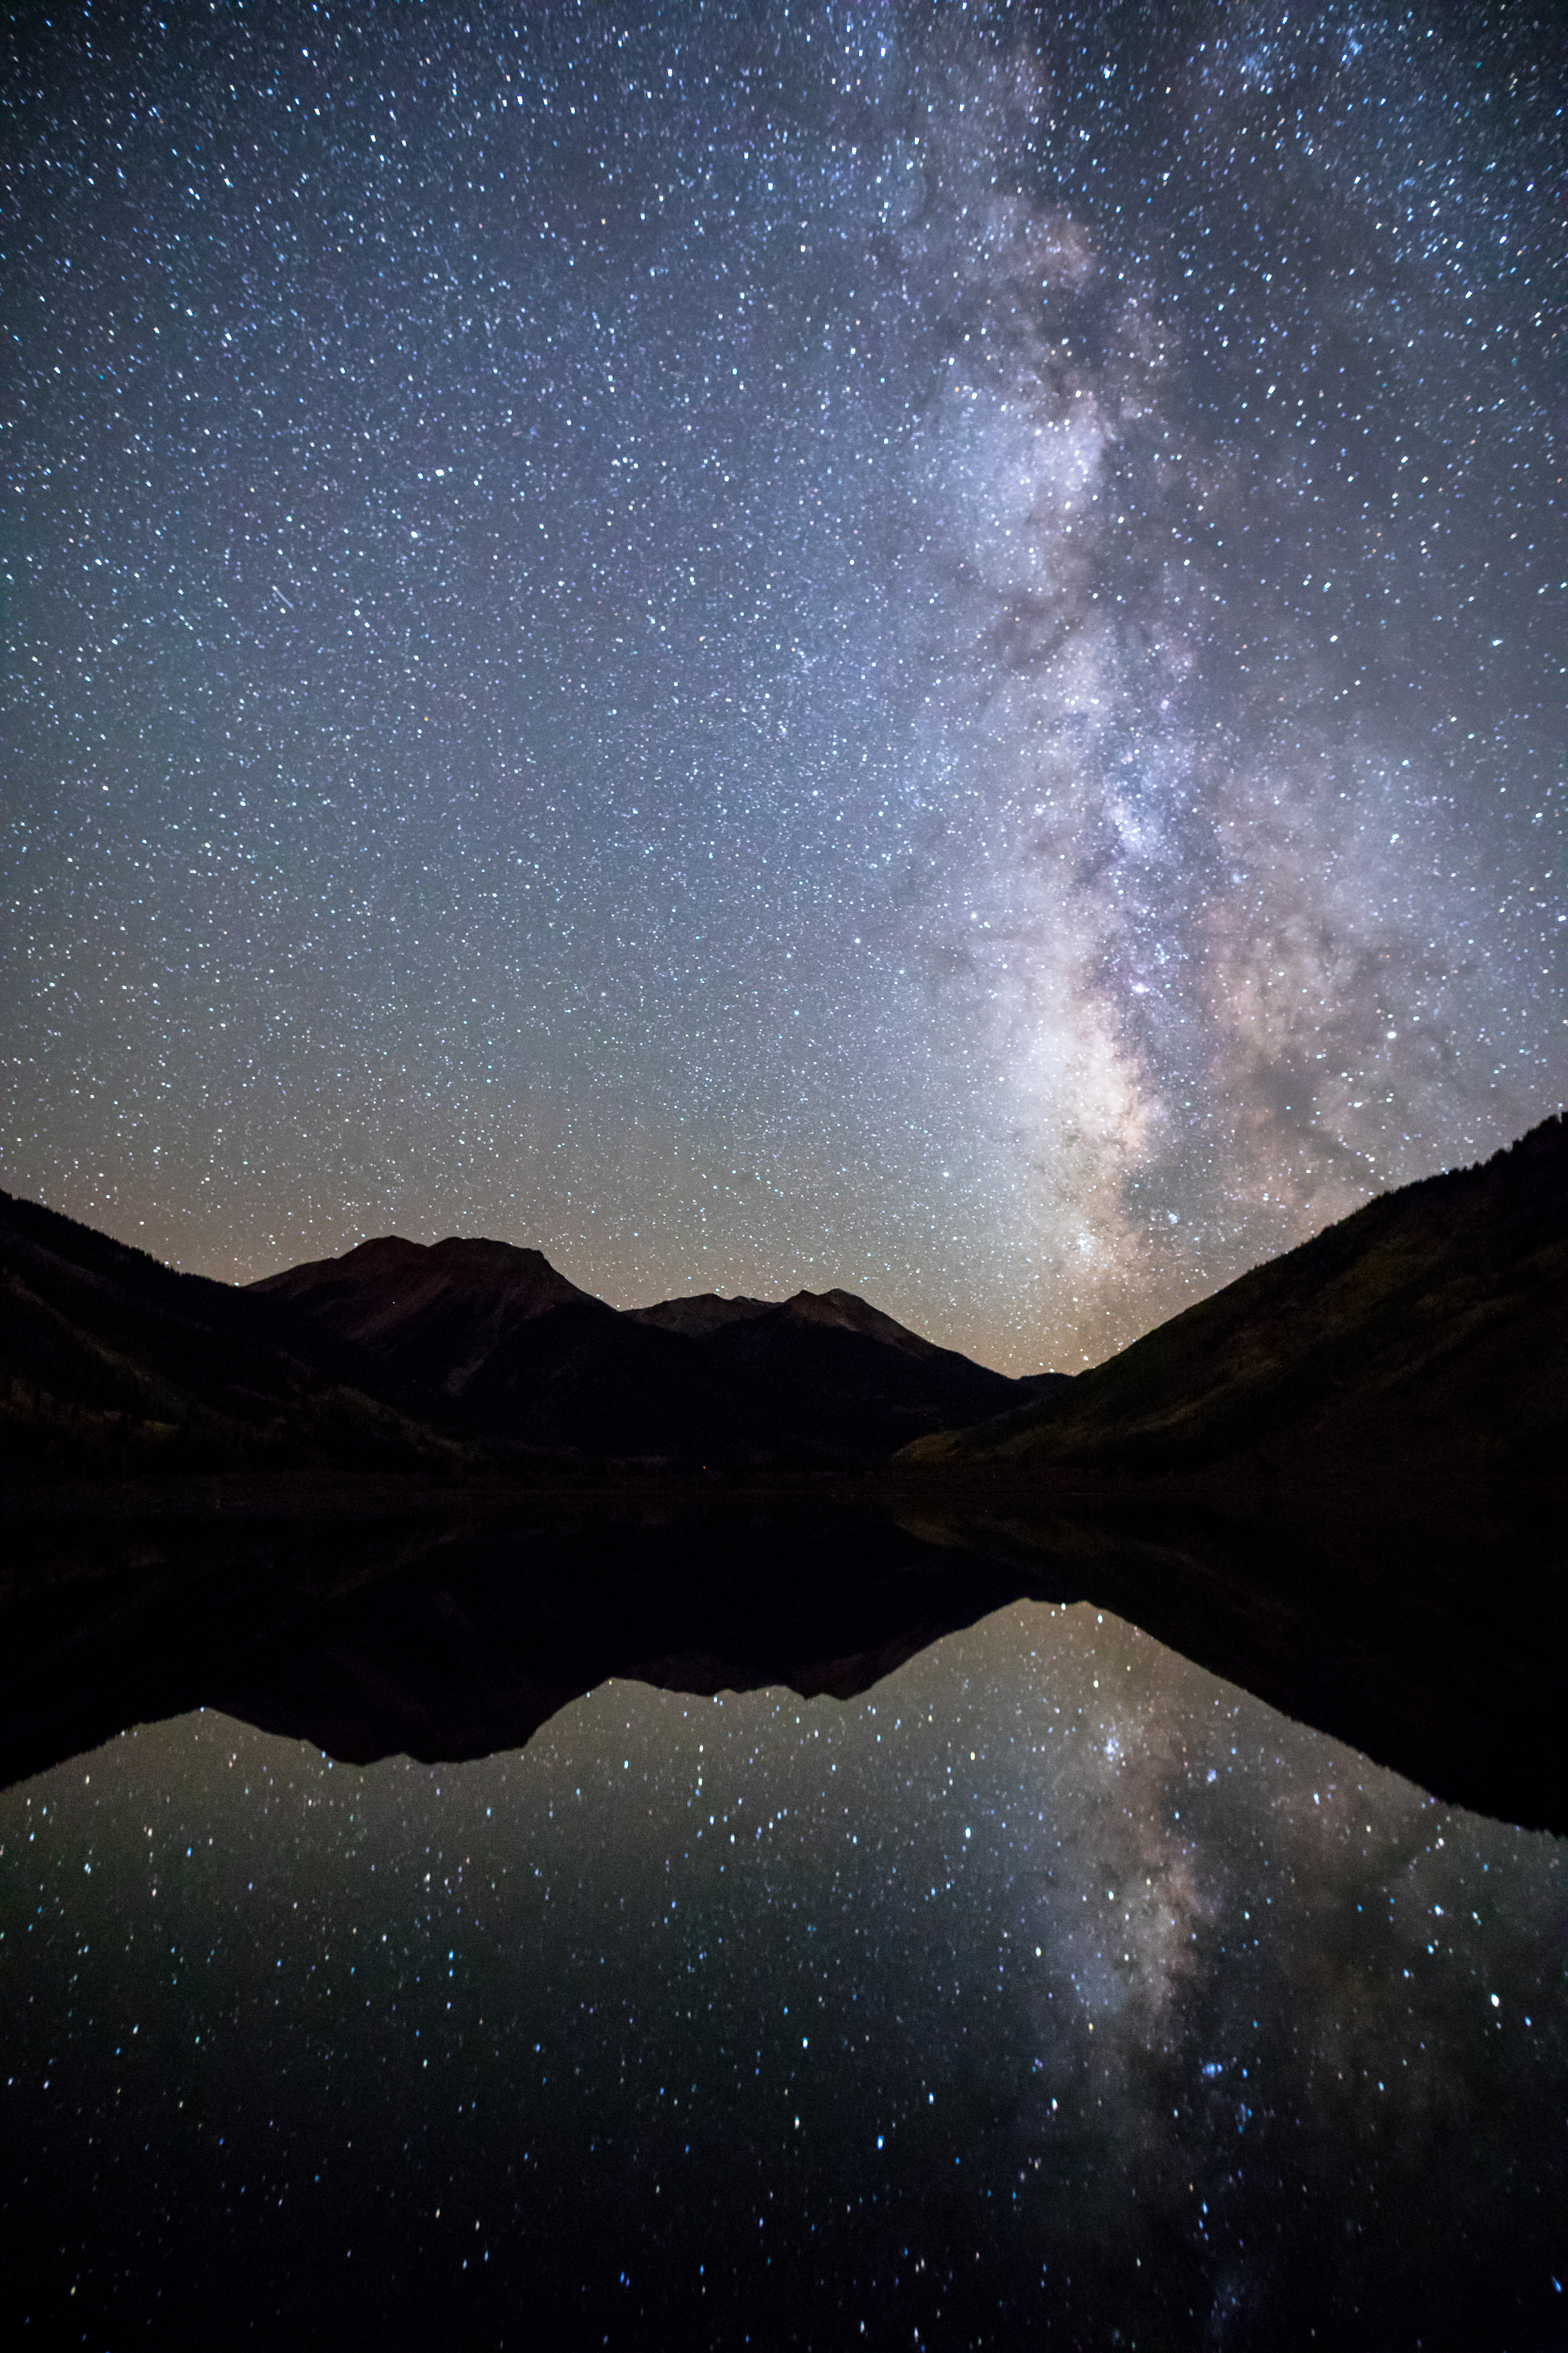 Milky Way Reflection over Red Mountain, Image # 1756